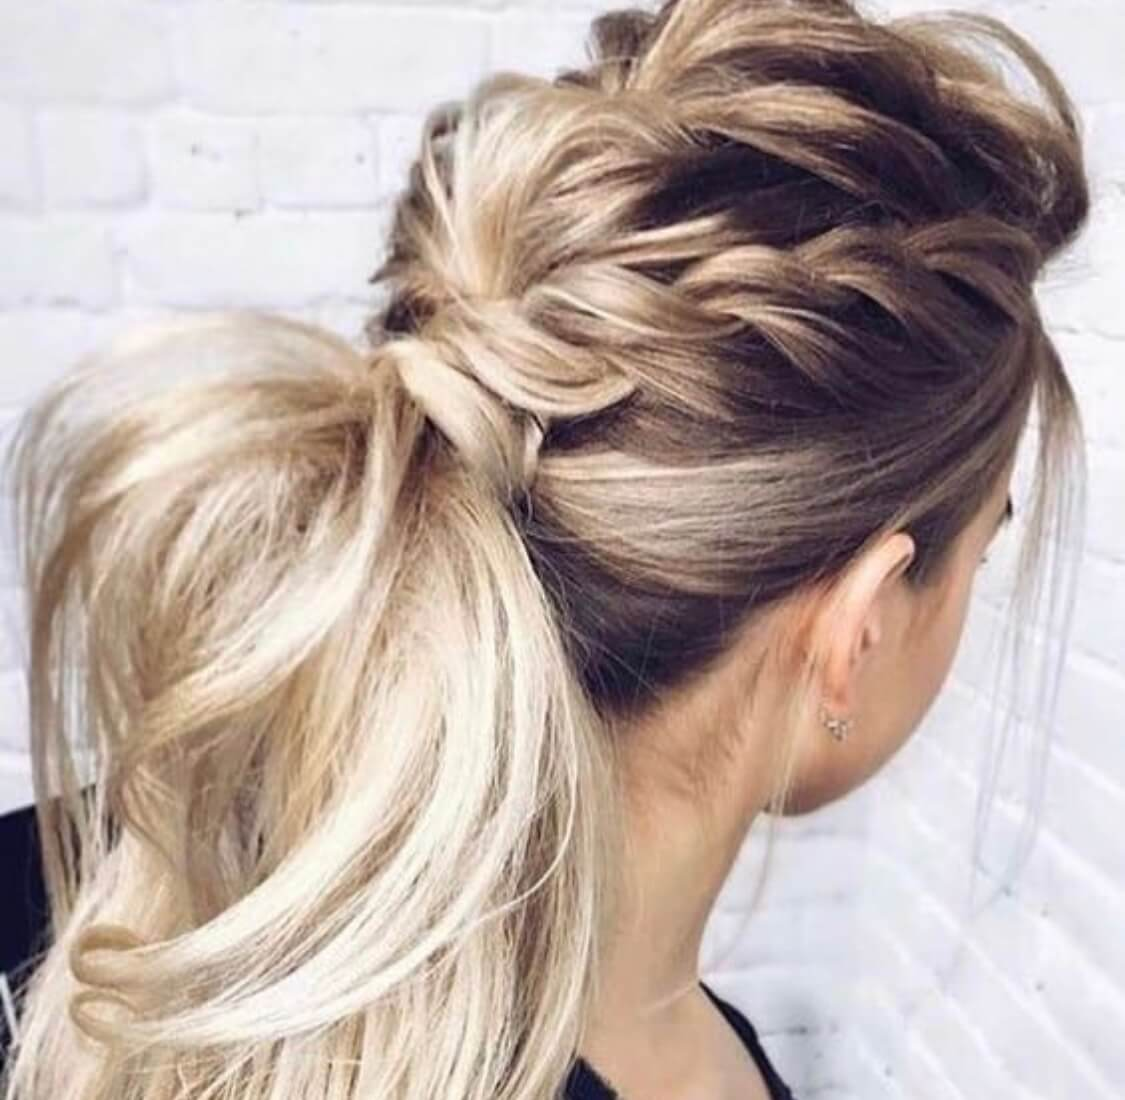 Celebrity hairstyle, ideas for a haircut, long blonde hair ideas, short blonde hair ideas, curly hair, straight hair, waves, curls, messy hair, bangs, hair inspiration, hairstyles for thin hair, hairstyles for short hair, hairstyles for long hair, blonde hairstyle, going blonde, blonde curls, blonde messy hair, blonde hair inspiration, long blonde hair, blonde celebrity hairstyles,blonde waves, blonde messy hair, hair care, wedding hairstyles and makeup, wedding hairstyles, christmas hairstyles